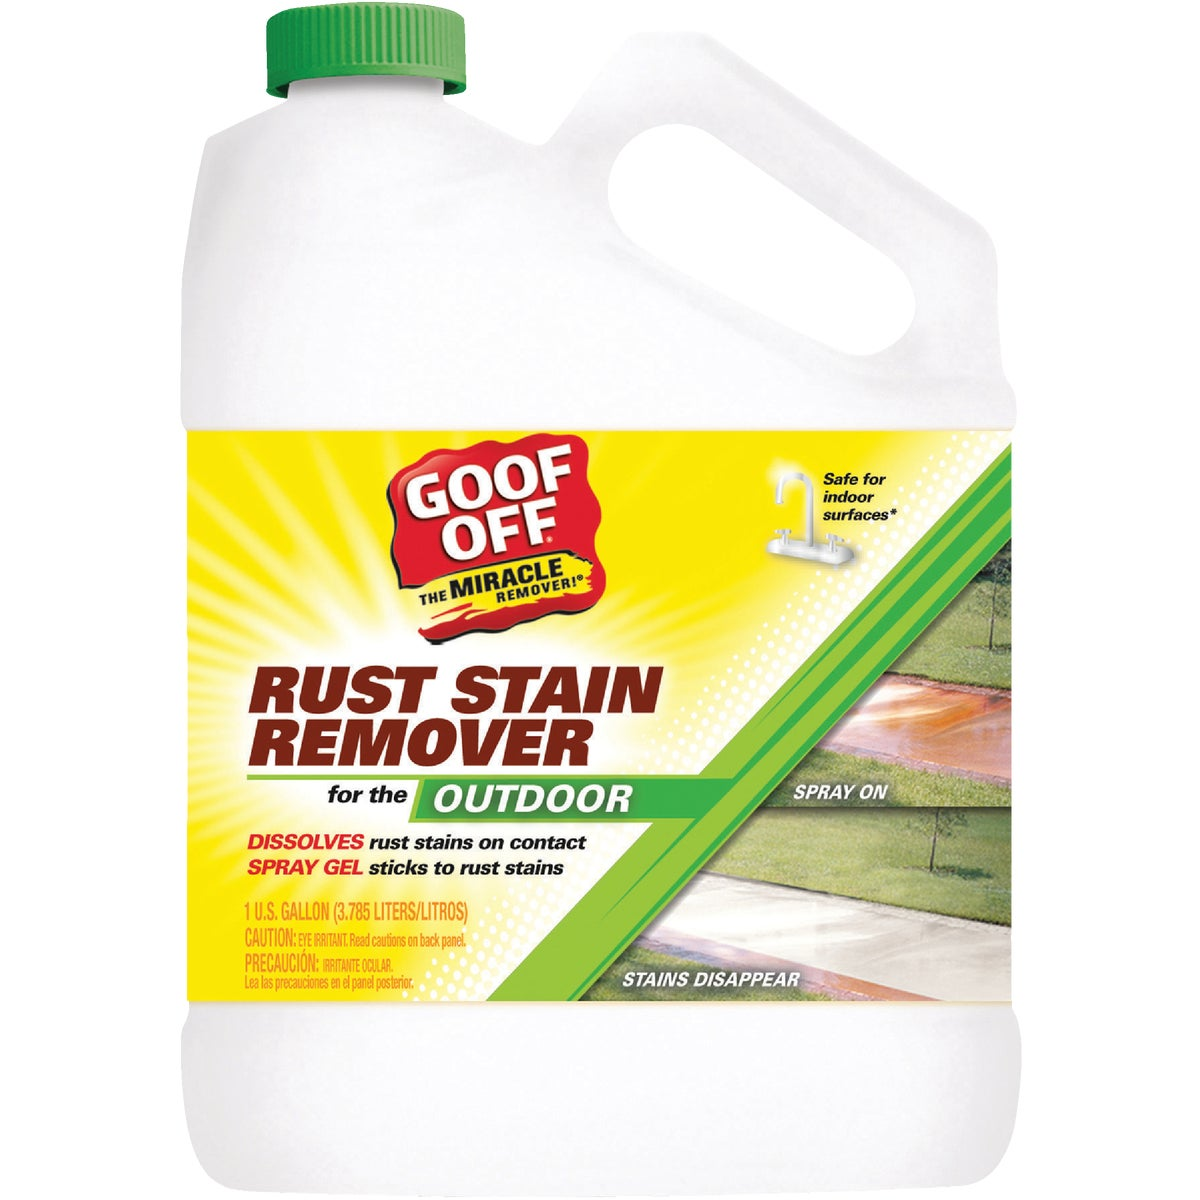 GAL RUST STAIN REMOVER